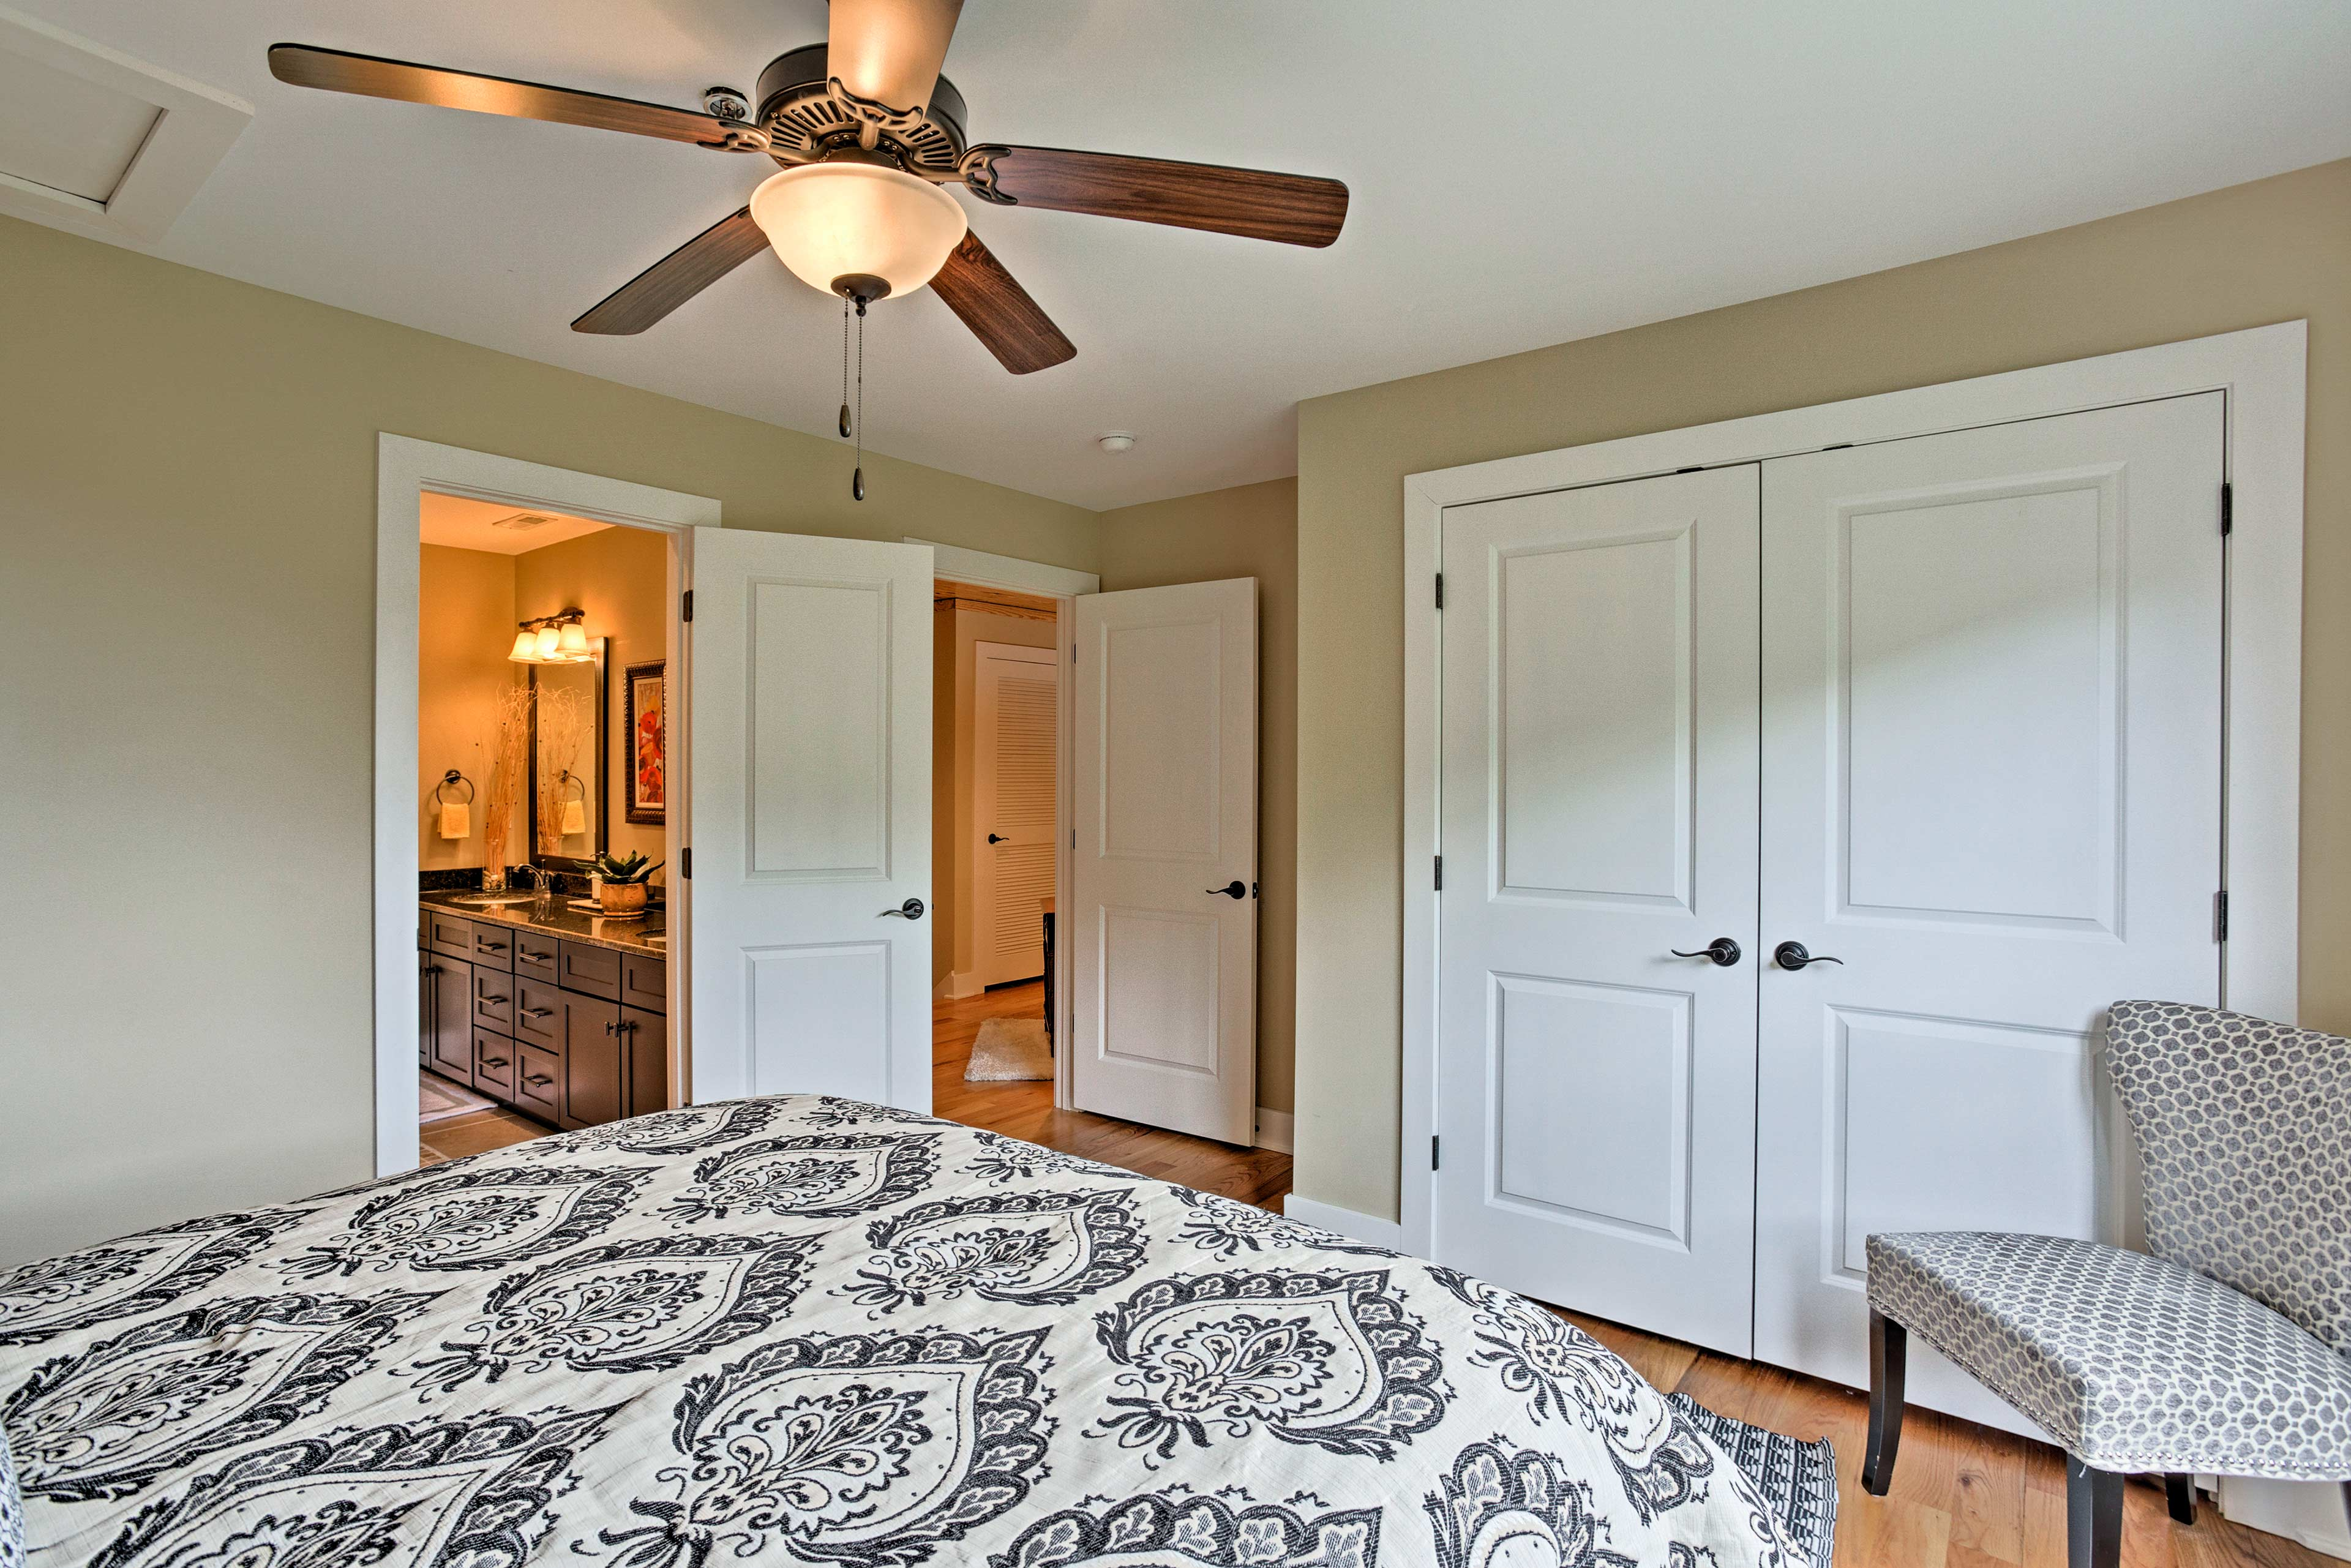 Turn the ceiling fan on for a breeze while you sleep.